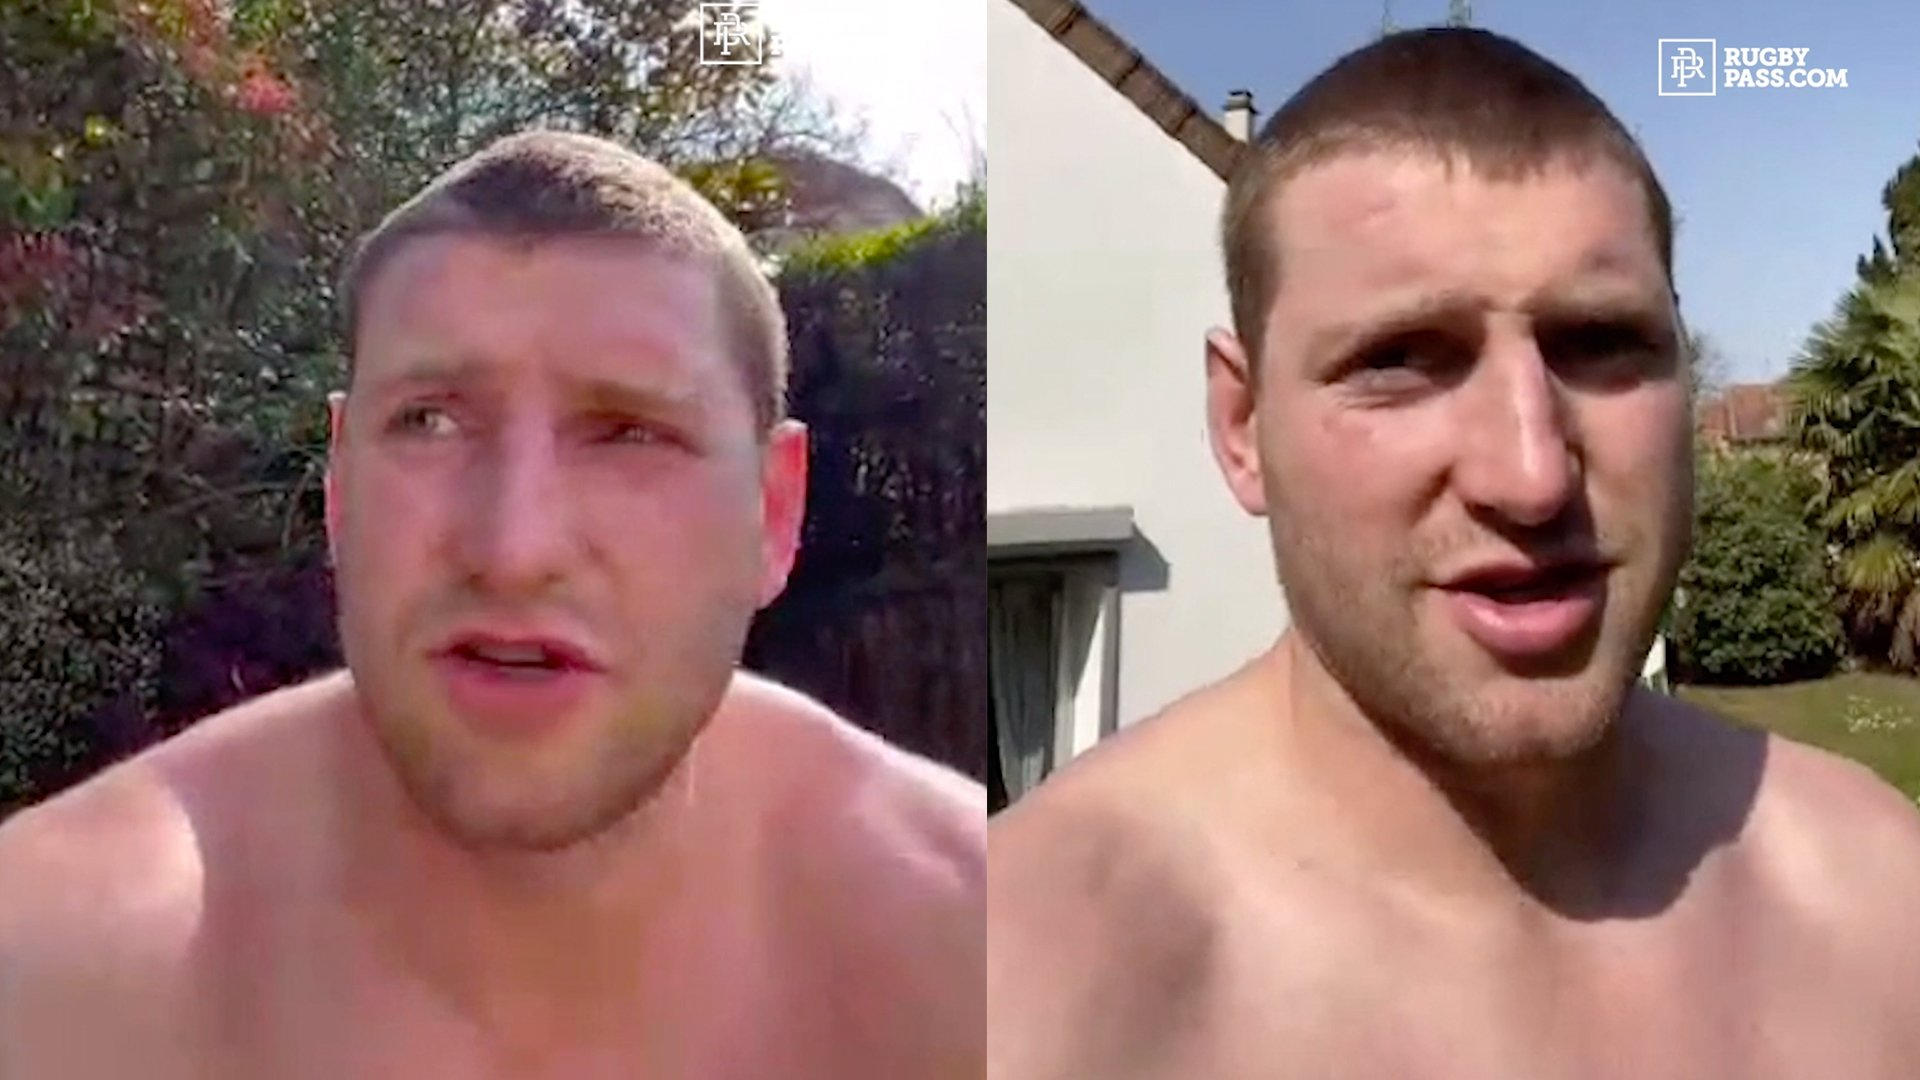 Finn Russells reveals all on Scotland situation, lockdown in France and his future in video